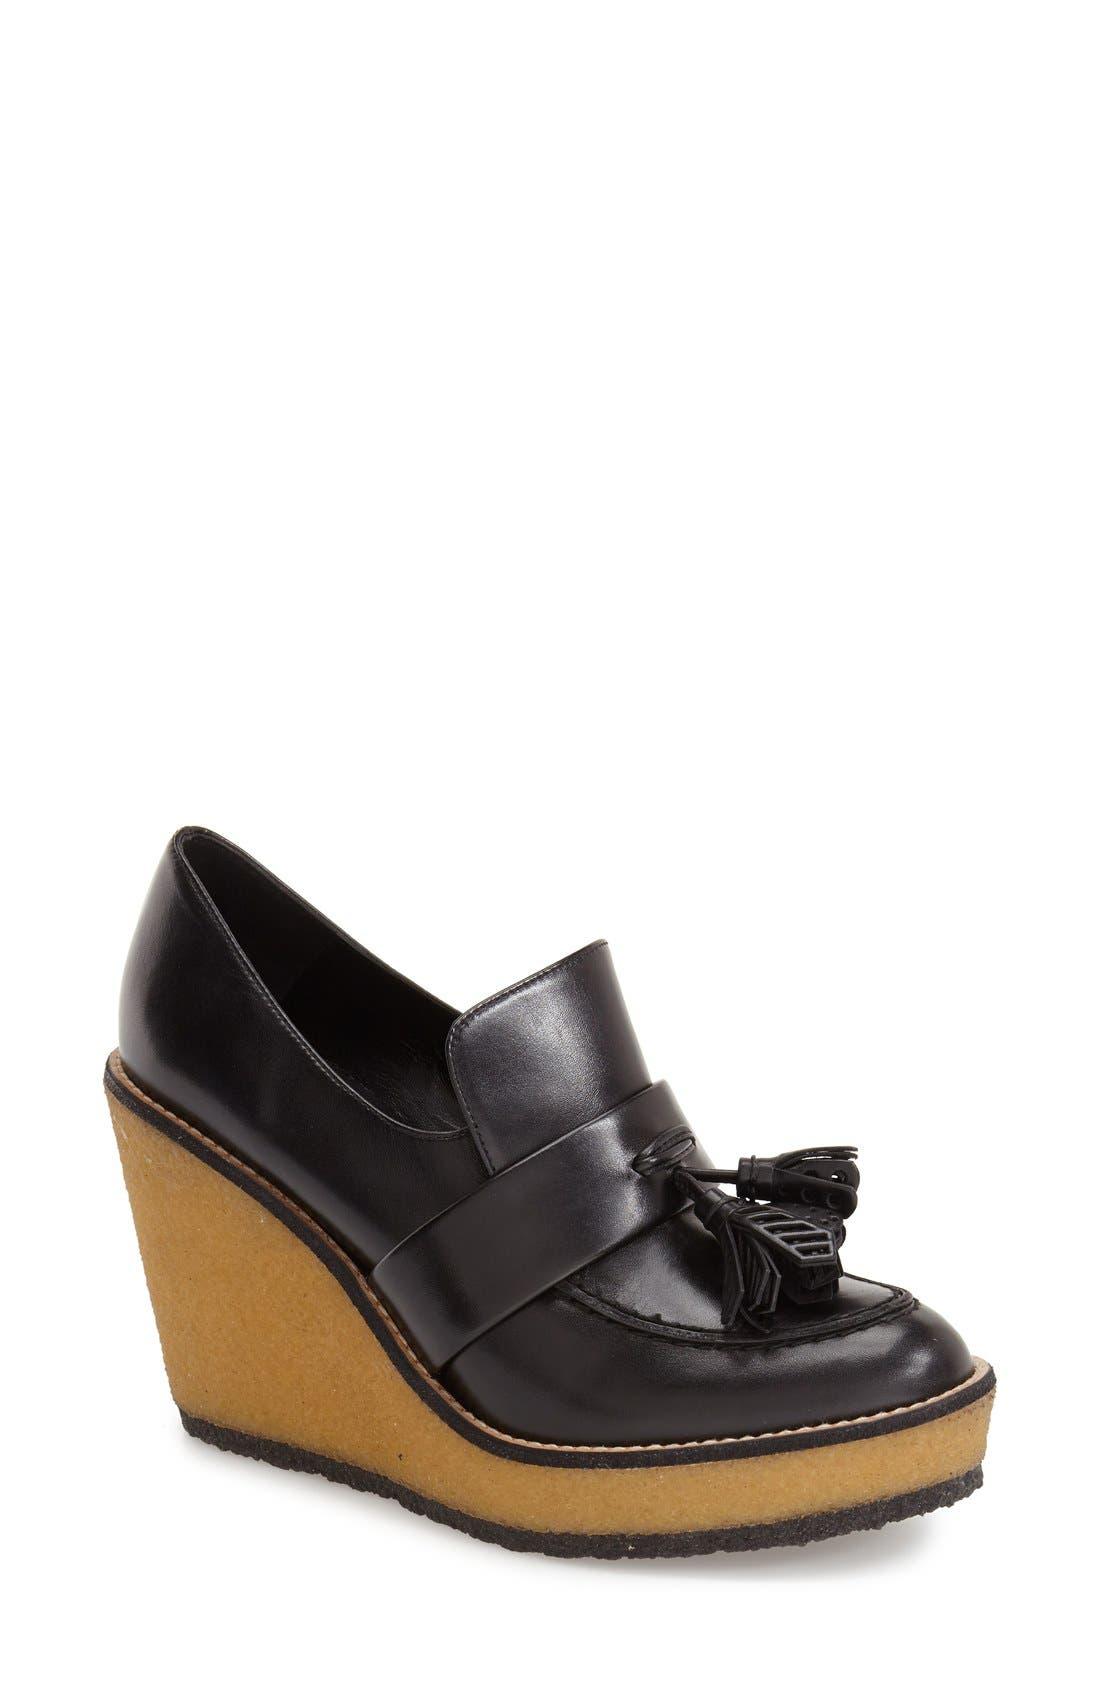 ROBERT CLERGERIE 'Astrid' Wedge Loafer, Main, color, 001